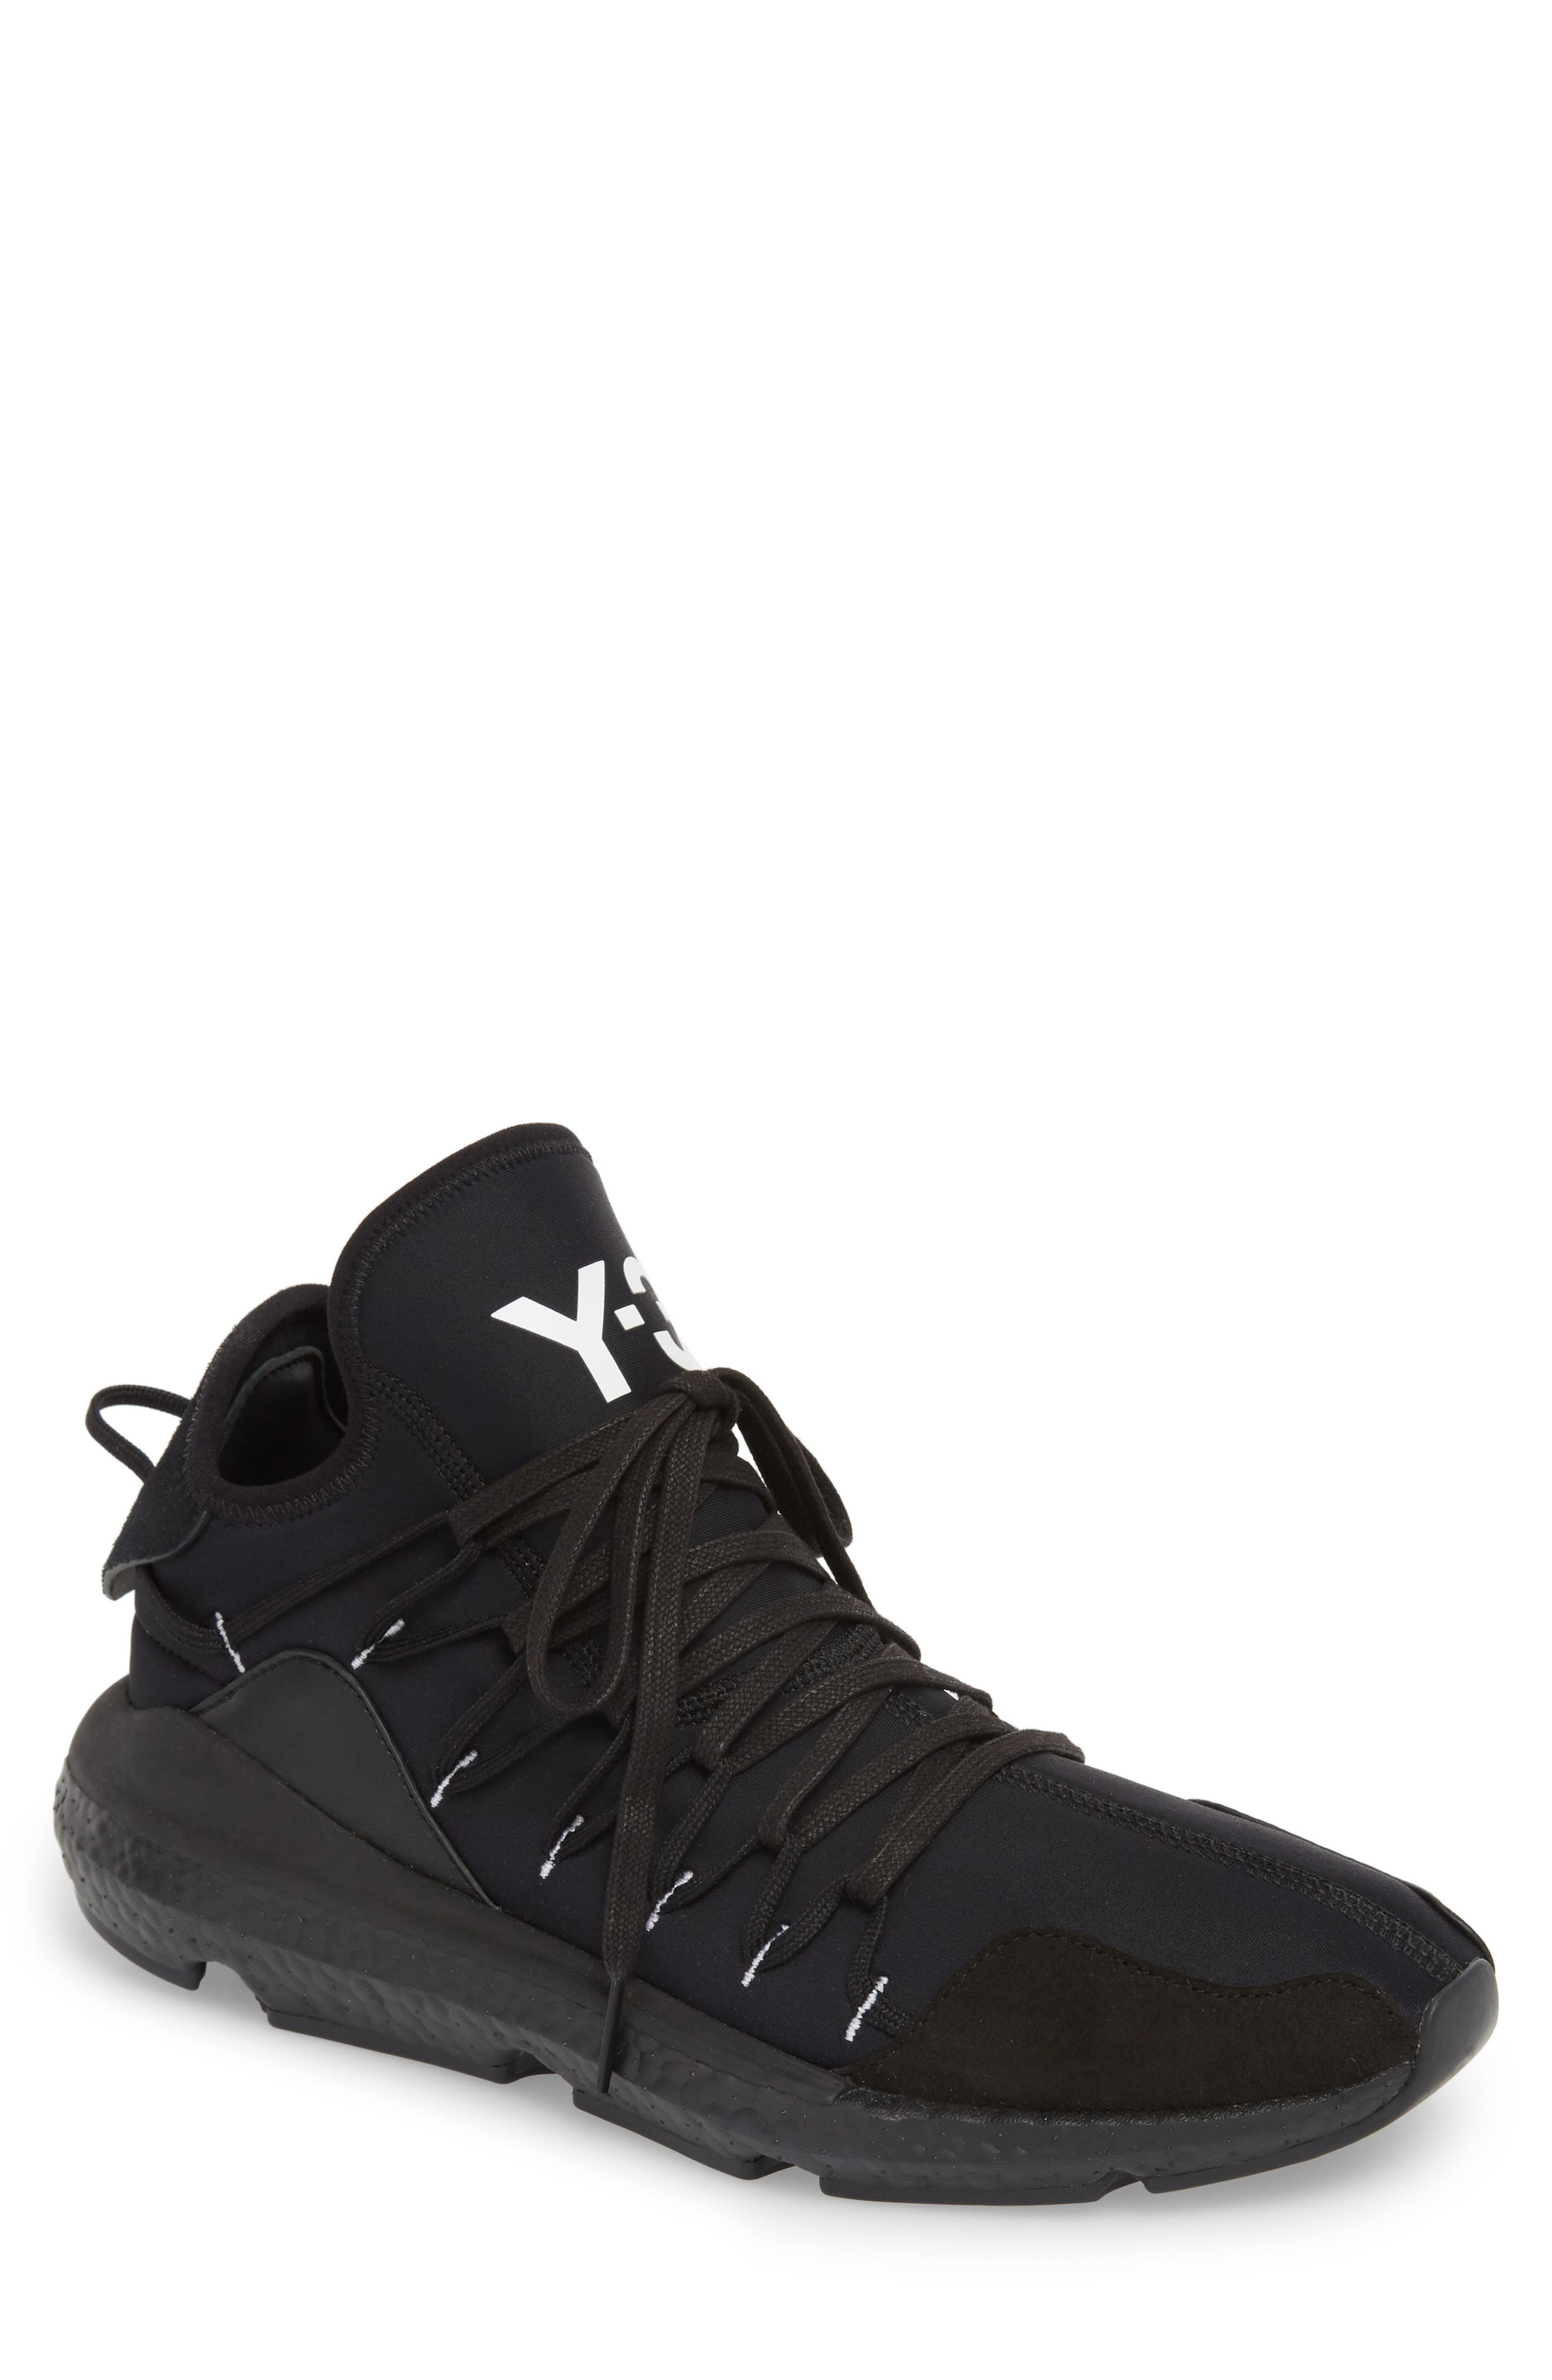 x adidas Kusari Sneaker,                             Main thumbnail 1, color,                             Black/Black